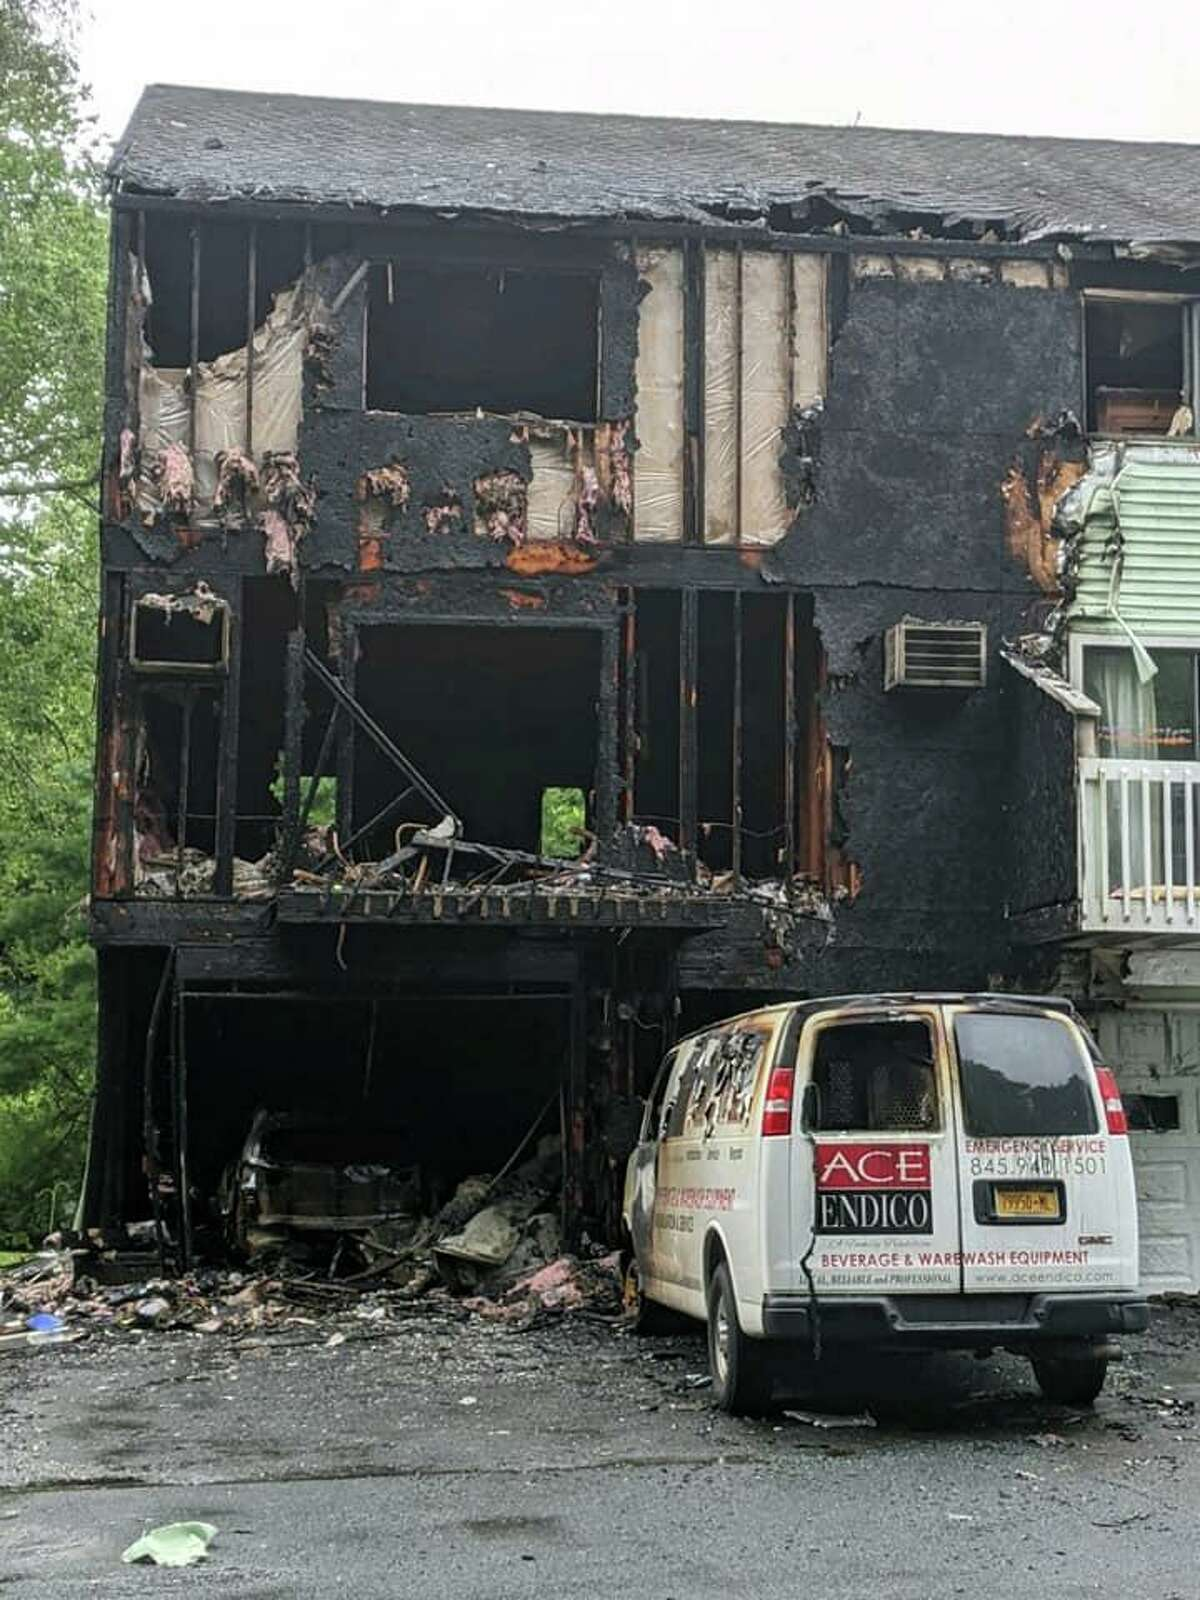 Rowayton Elementary School kindergarten teacher Gianna Fiorentini lost her Danbury townhouse in a fire on July 19. She and her family safely escaped, but their cat is missing.